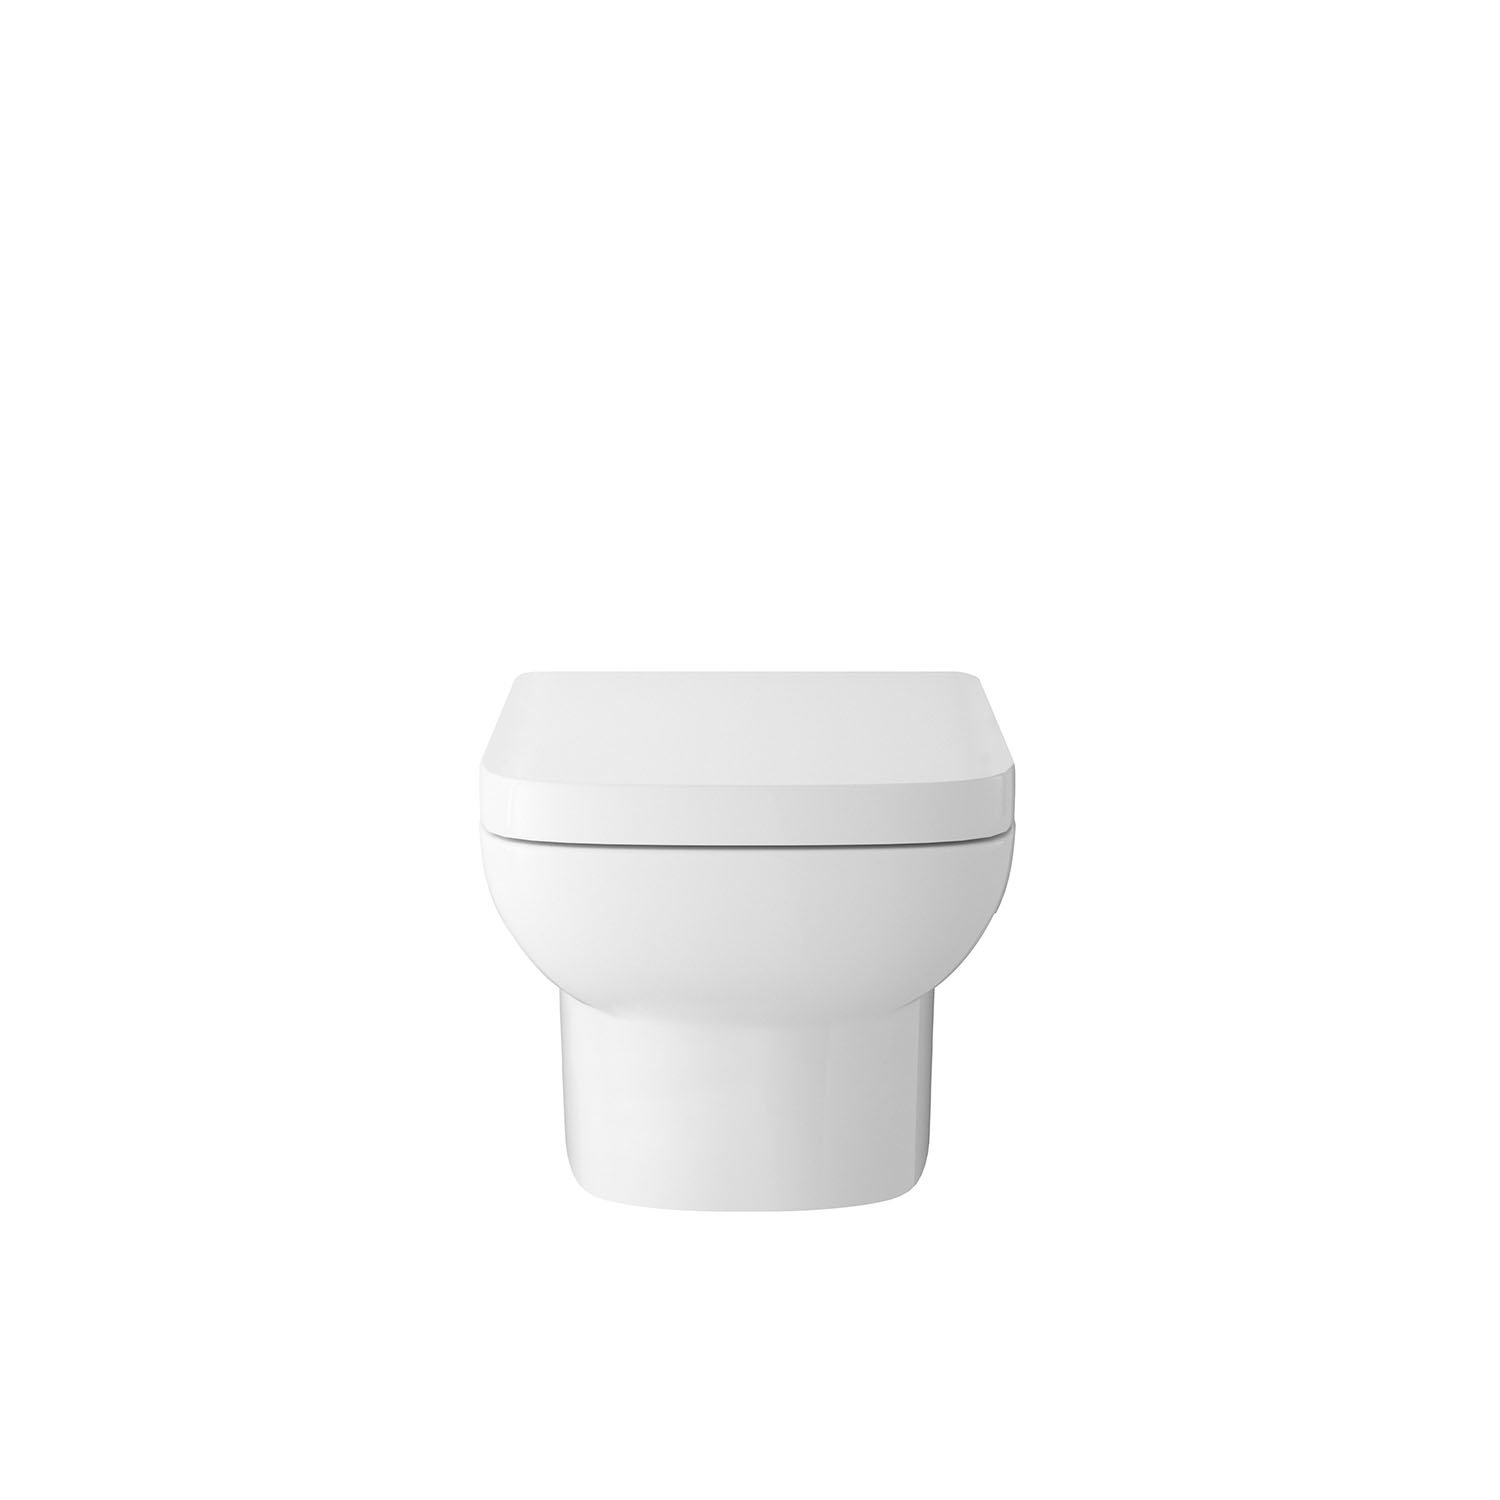 Hudson Reed CPA005 Oculus Semi Recessed Basin Pan and Seat, White